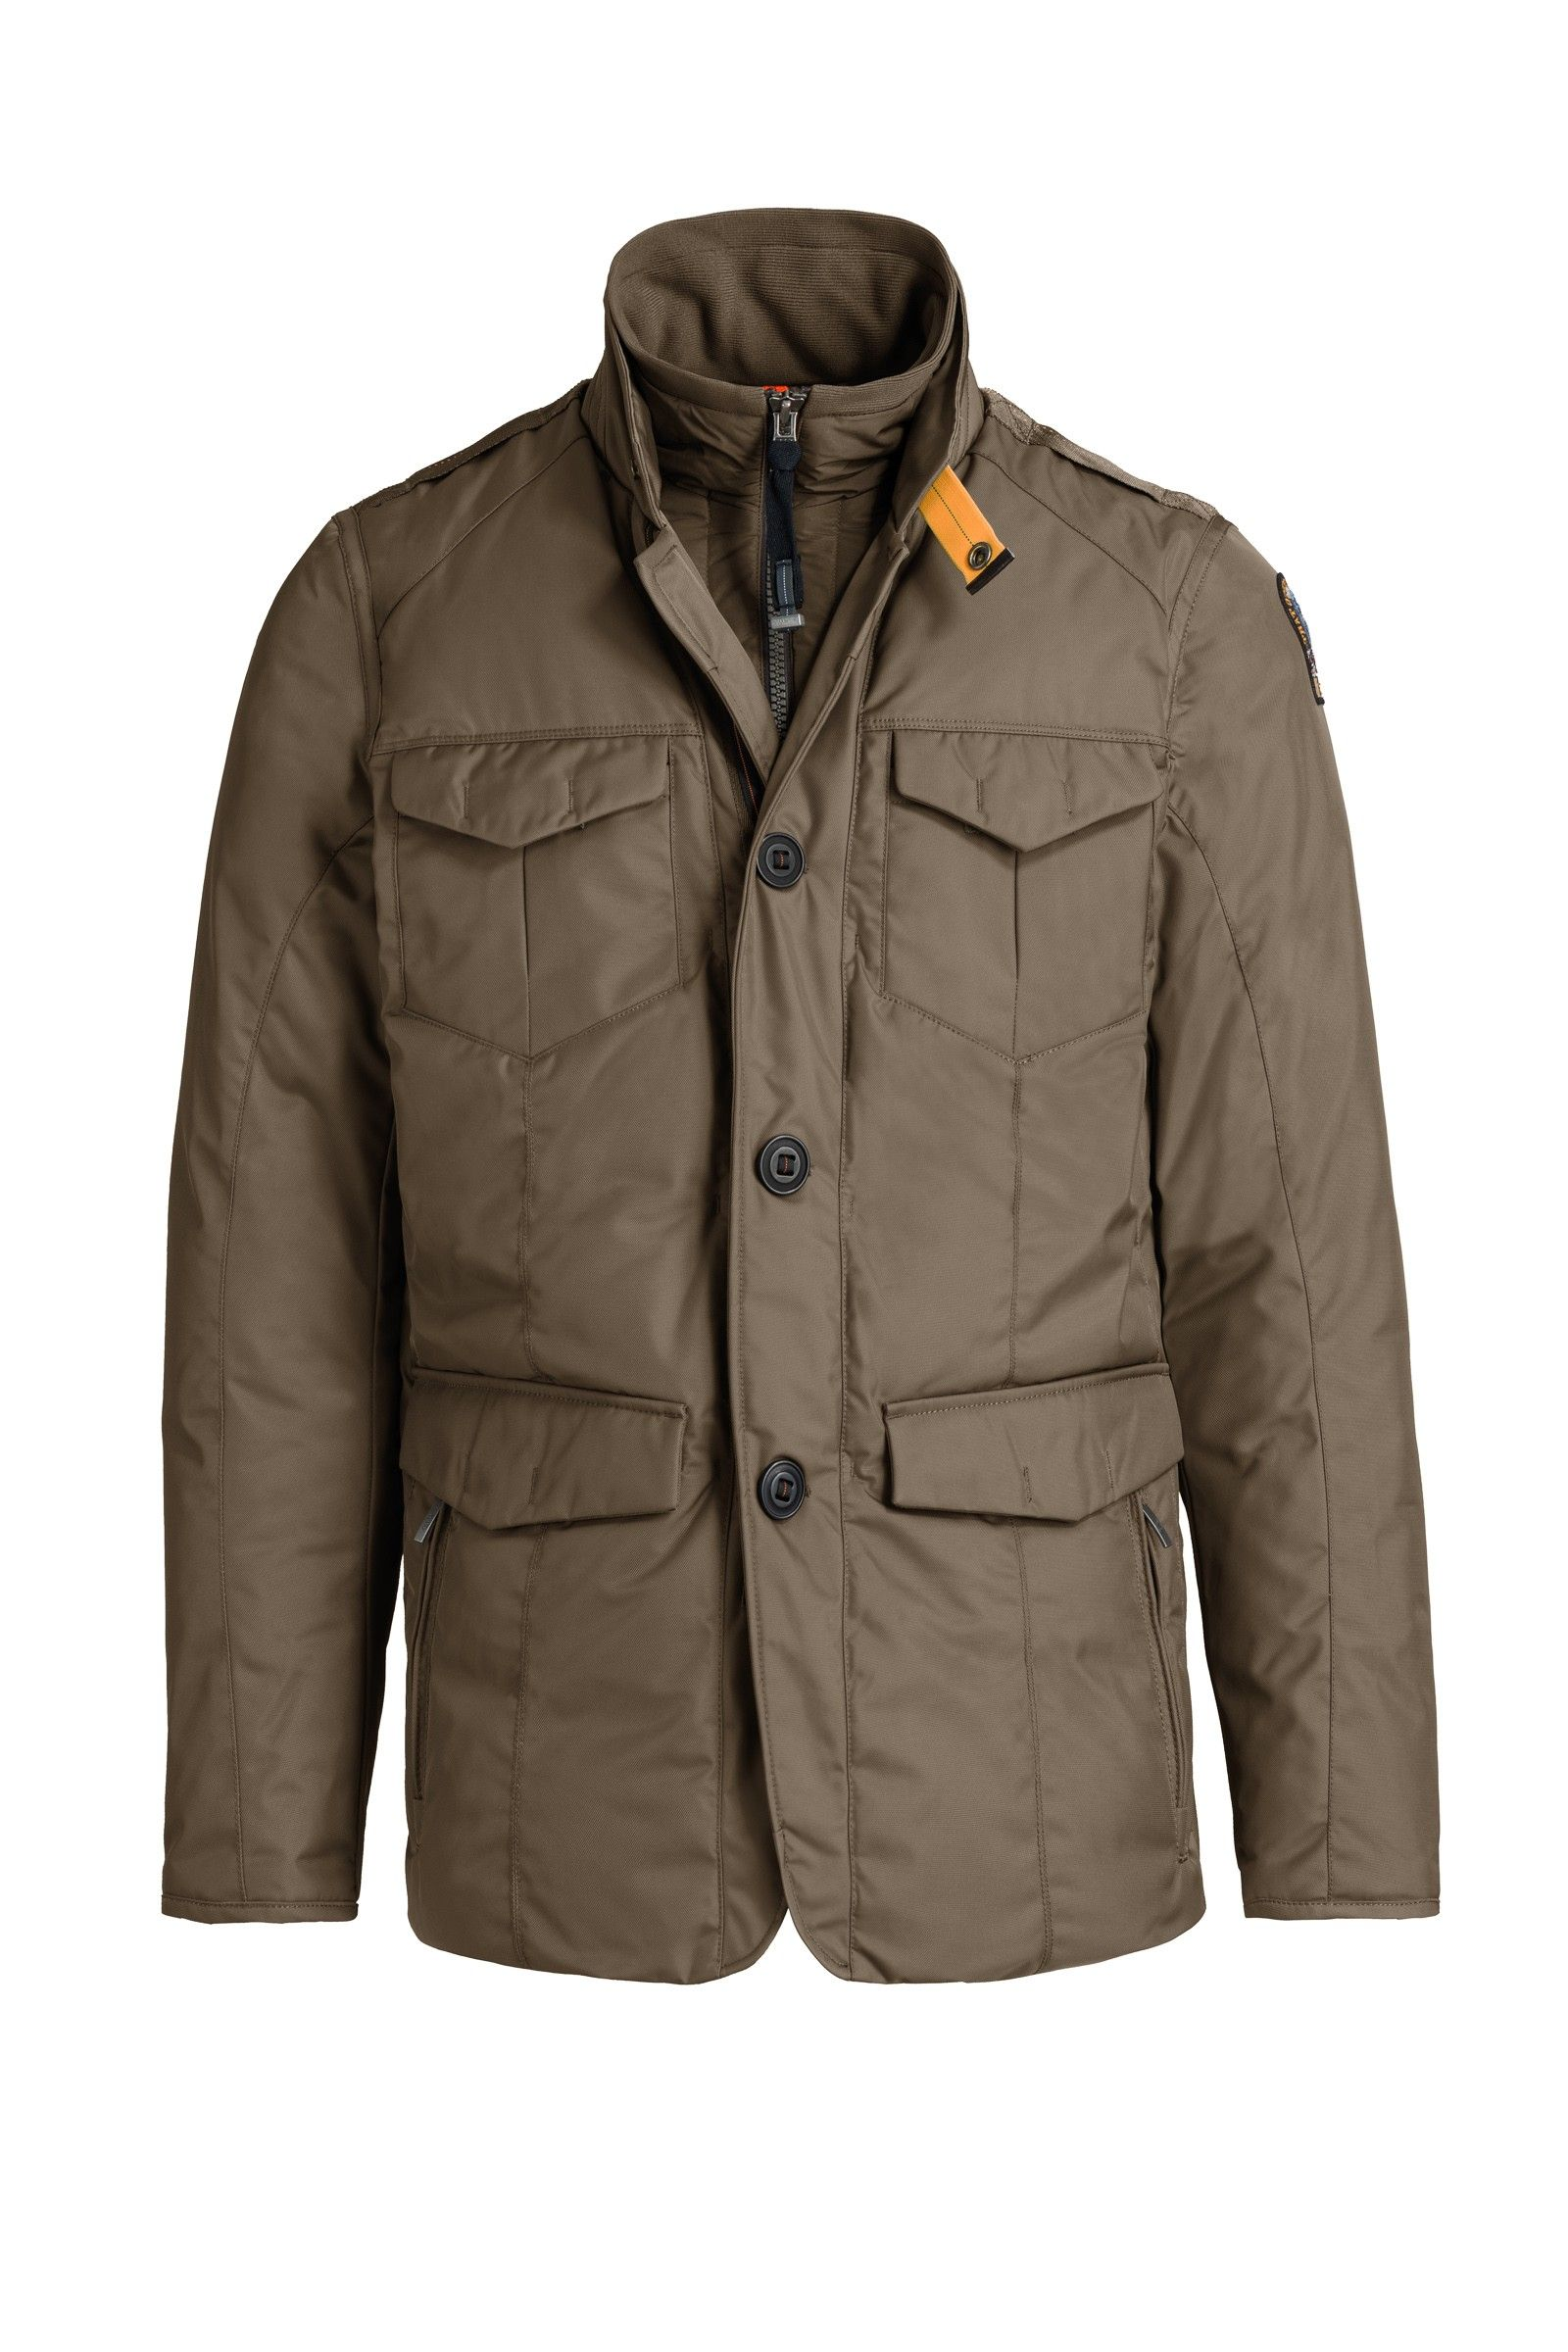 parajumpers harrison field jacket